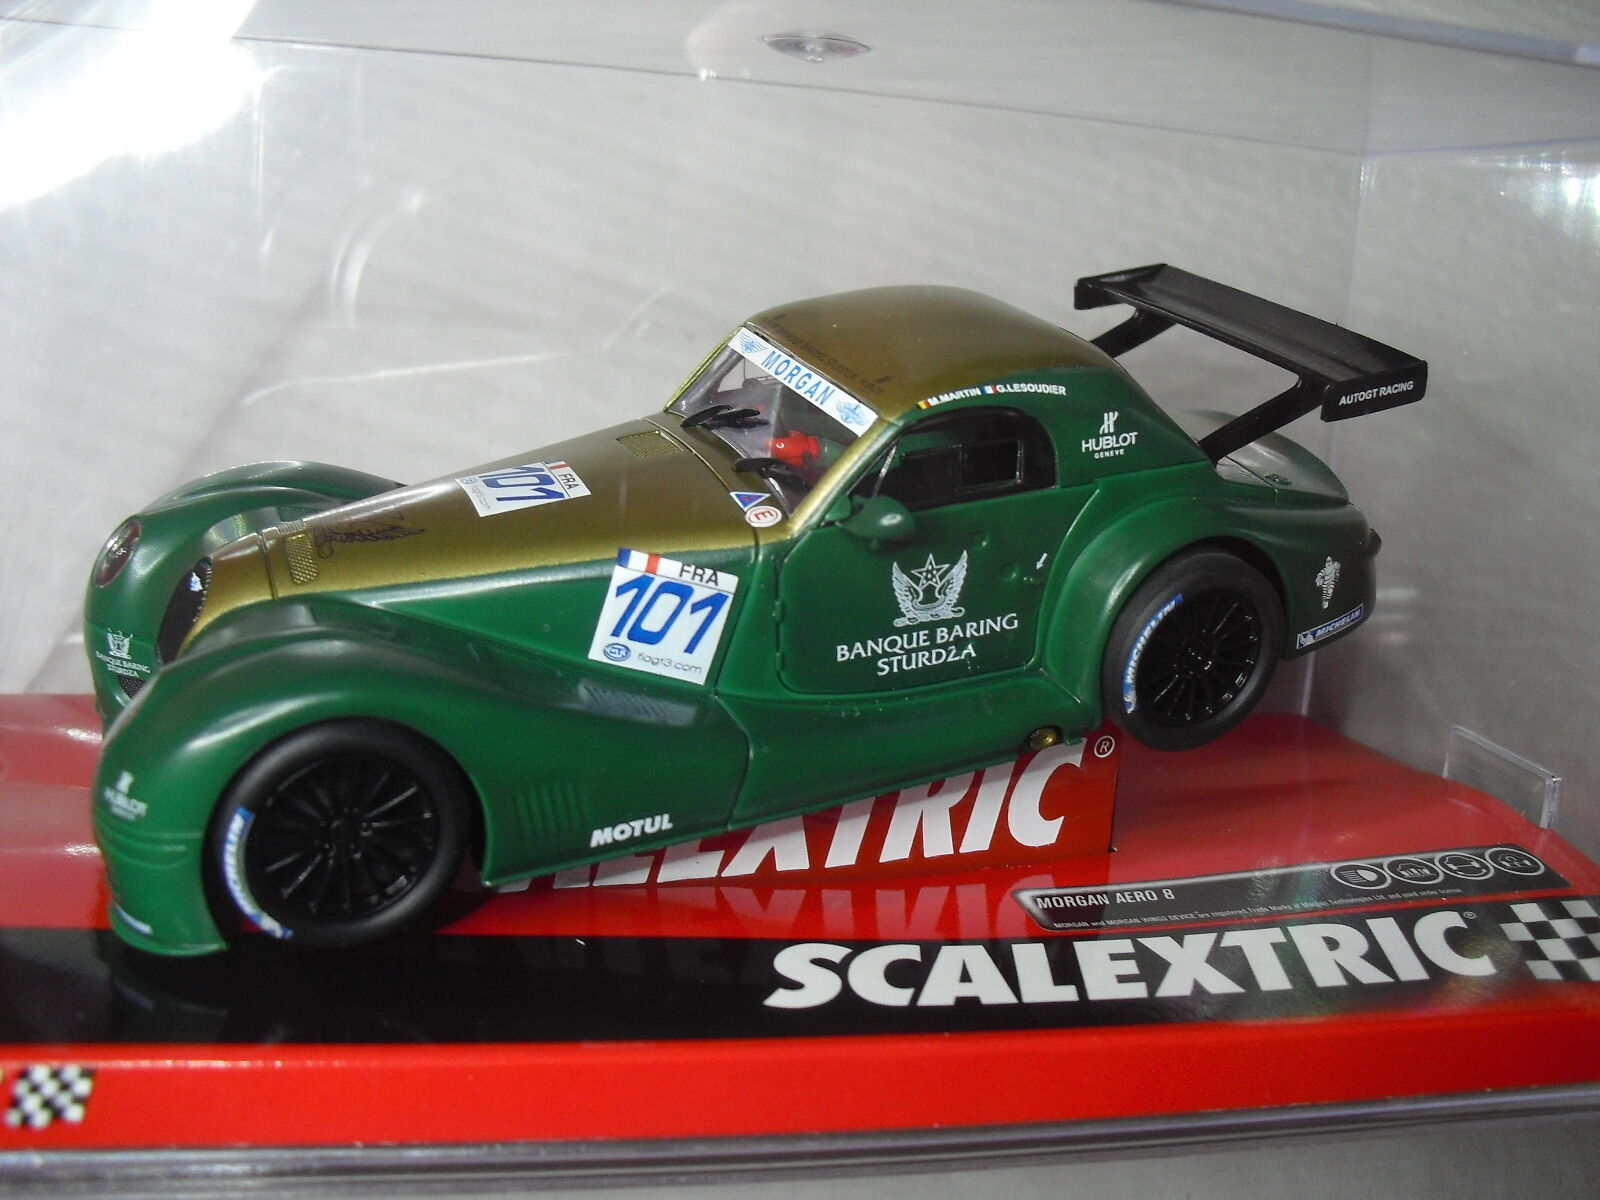 LOT 41 SCALEXTRIC A10218S300 Morgan aeero 8 GT Martin 1 32 new